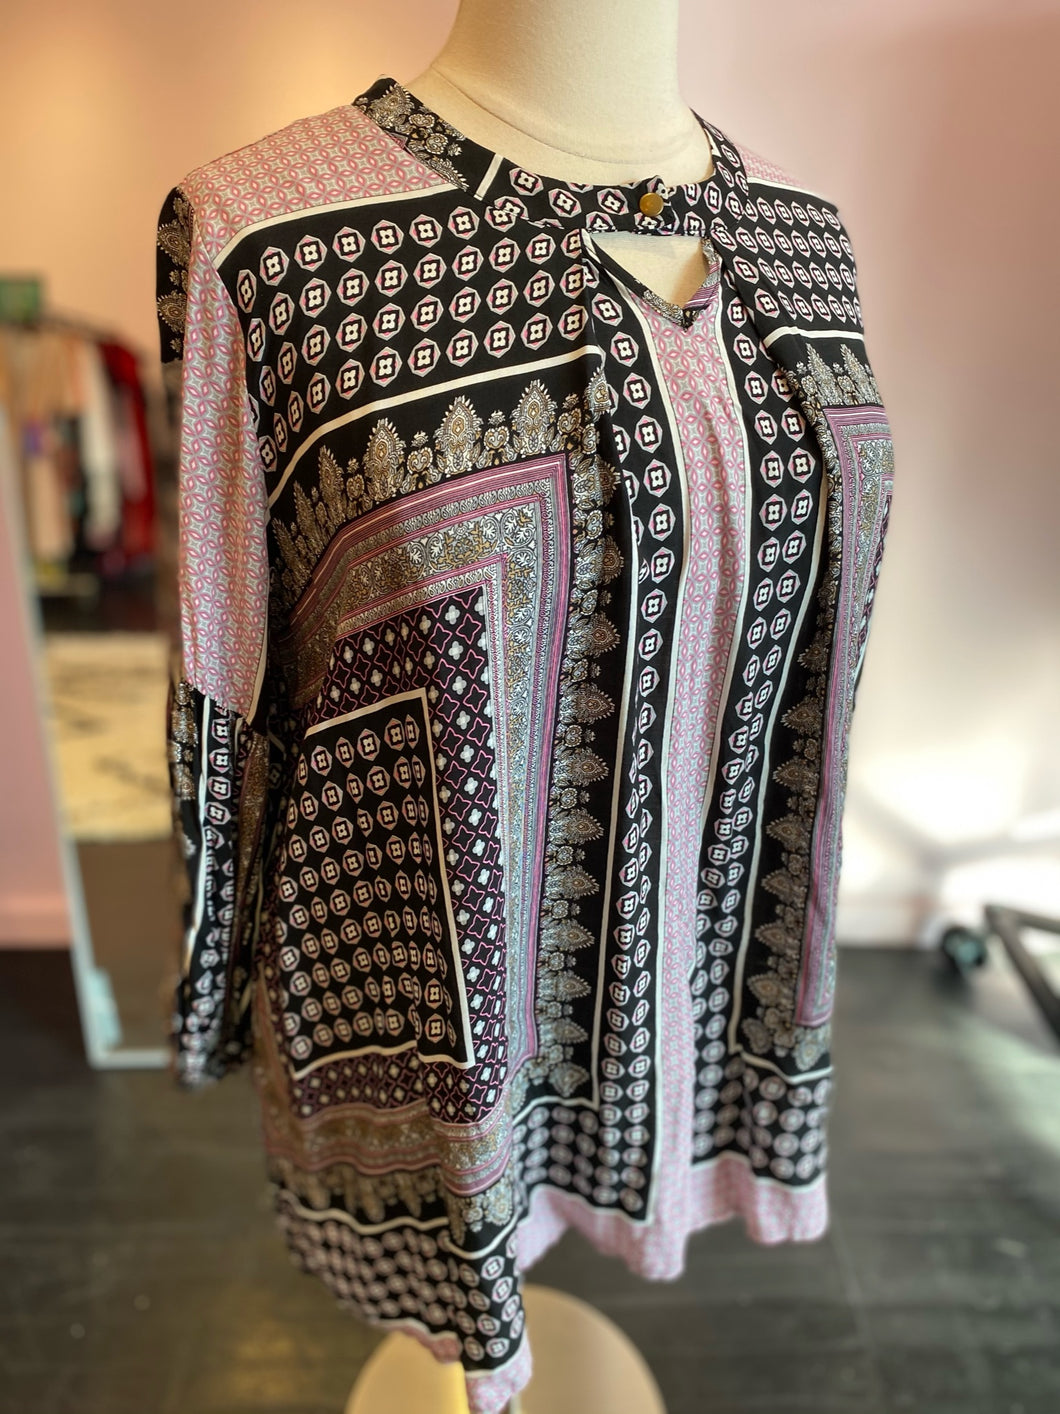 Pink, Black and White Mixed Print Top with Keyhole Detail by Velzera, Size 2X